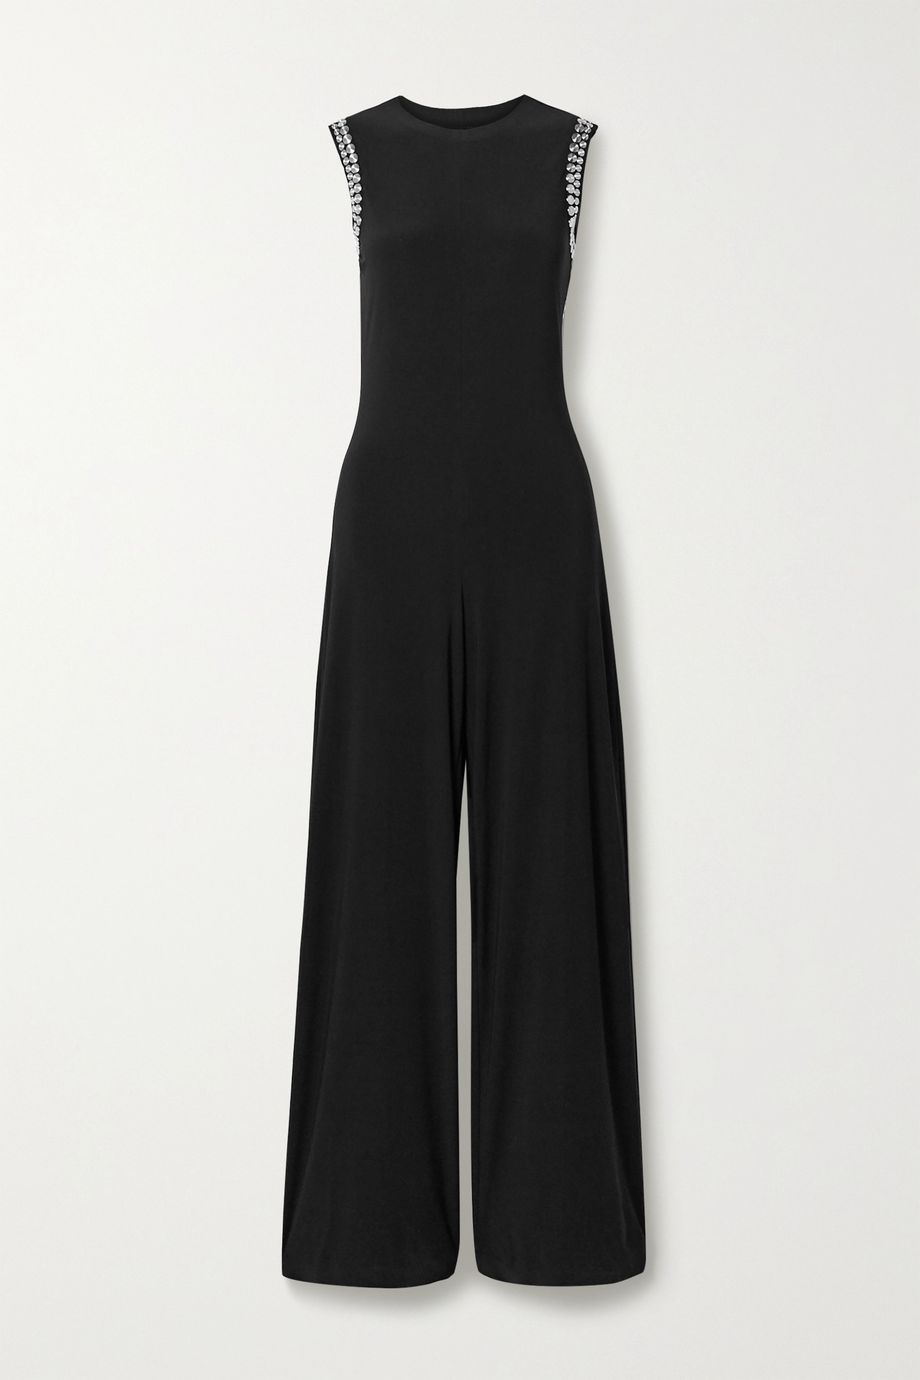 Norma Kamali Studded open-back stretch-jersey jumpsuit